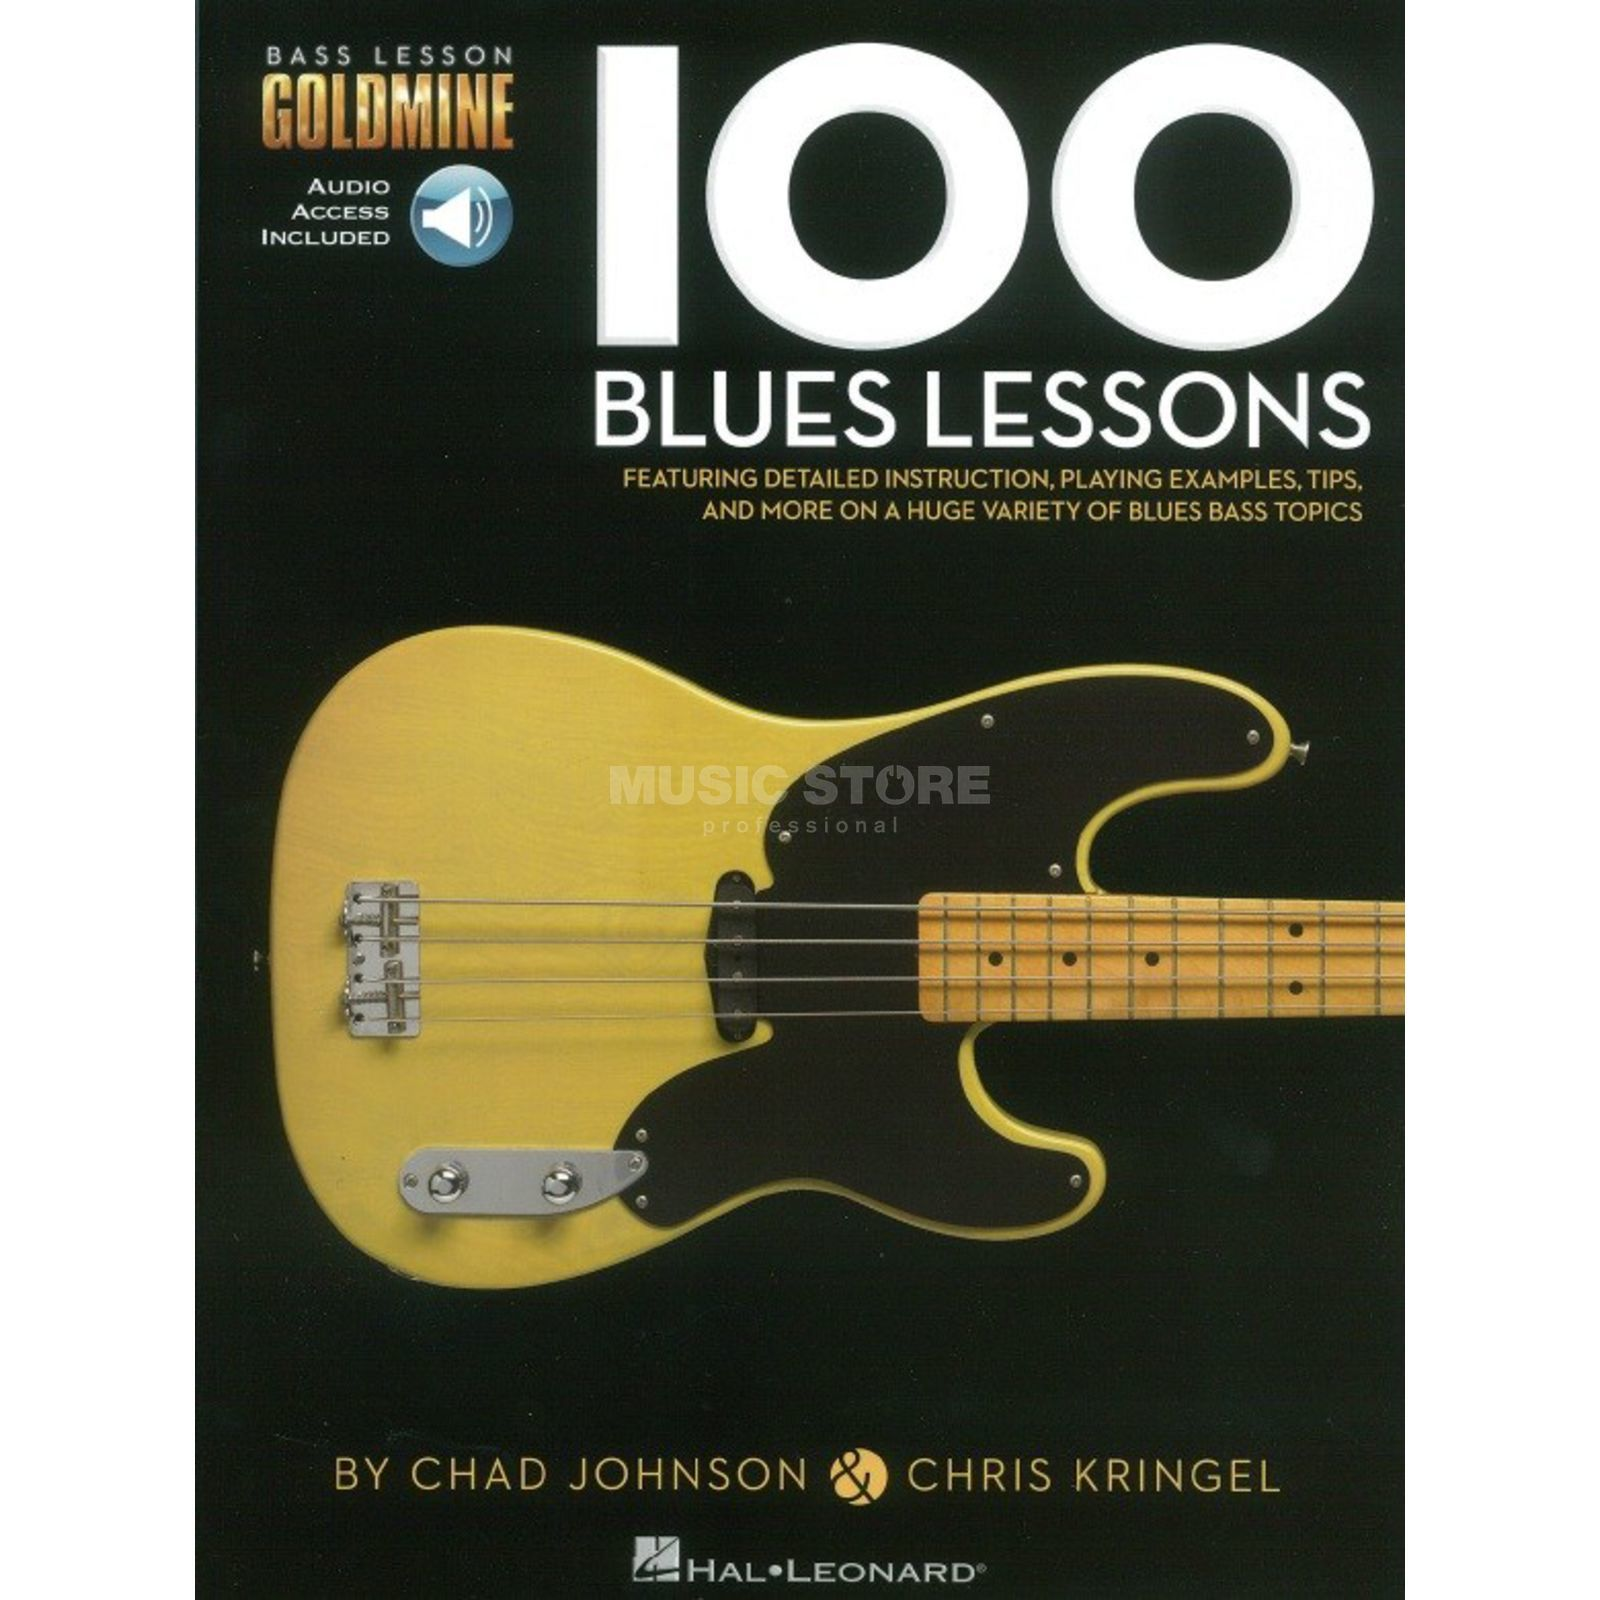 Hal Leonard Goldmine: 100 Blues Lessons Bass Produktbillede